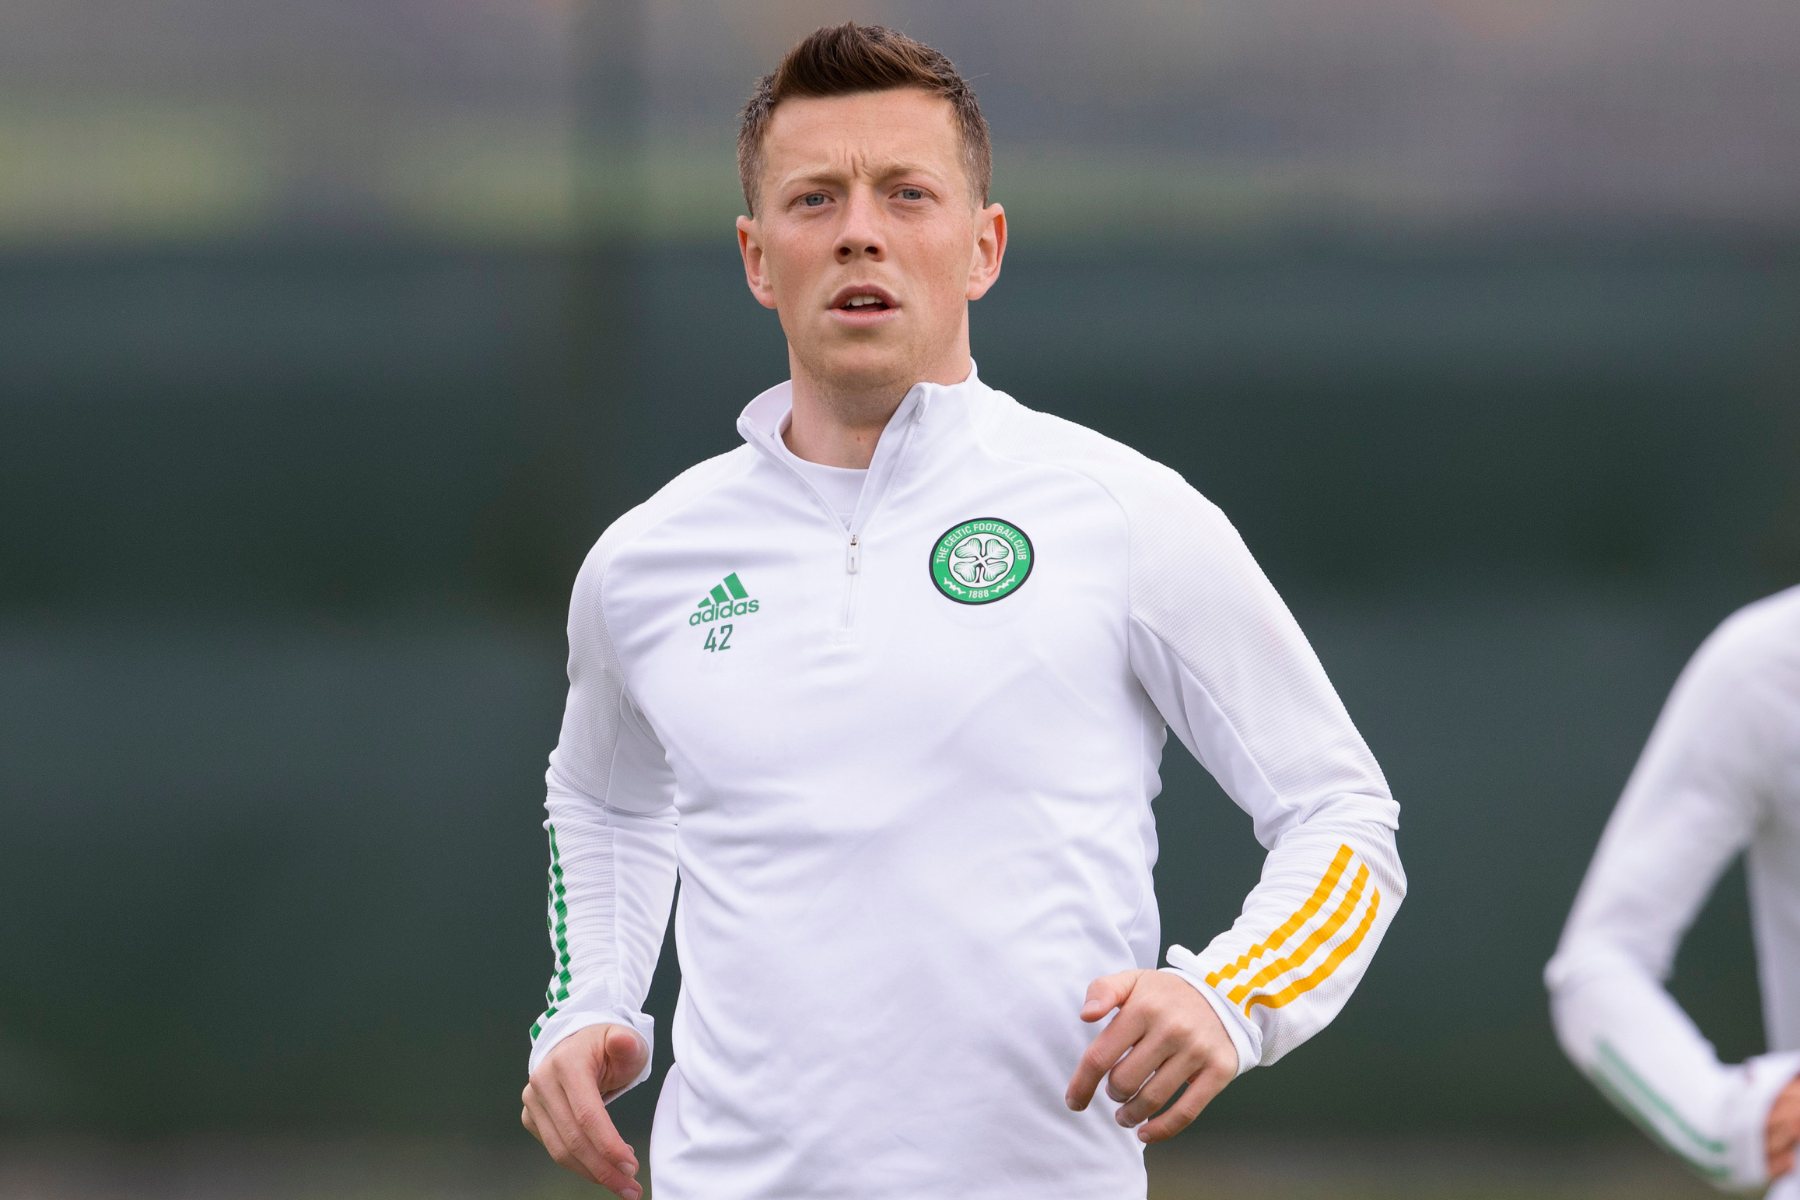 Callum McGregor singles out 'first class' Celtic ace who trained on his own in bid for first team chance